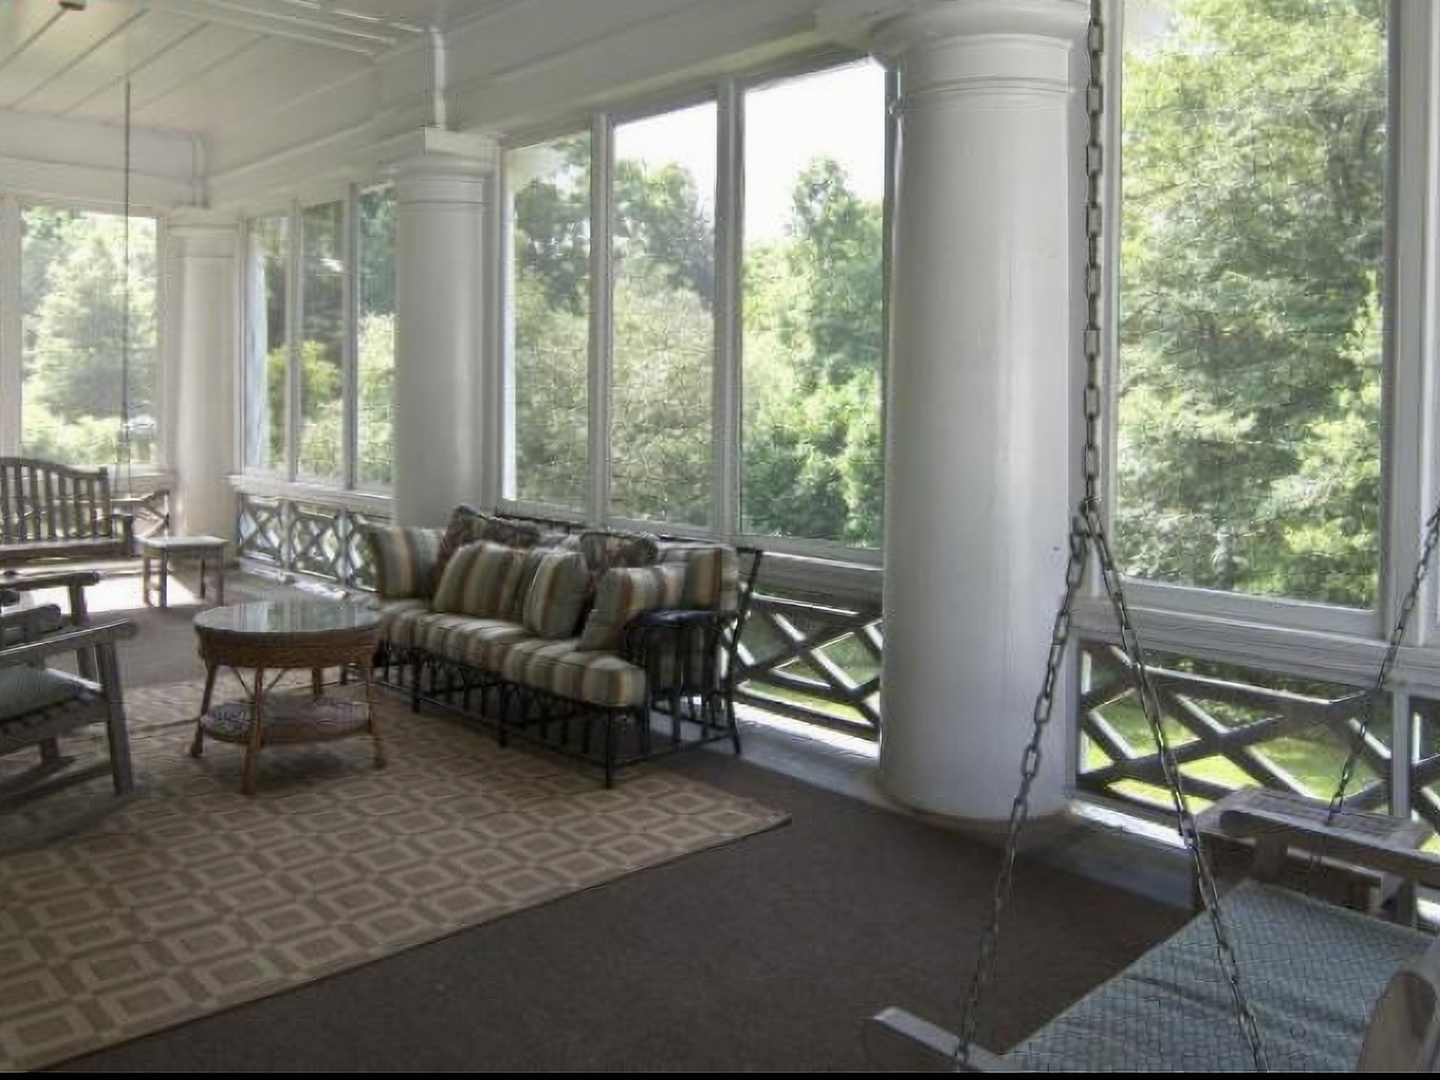 A living room filled with furniture and a large window at The Duke Mansion.